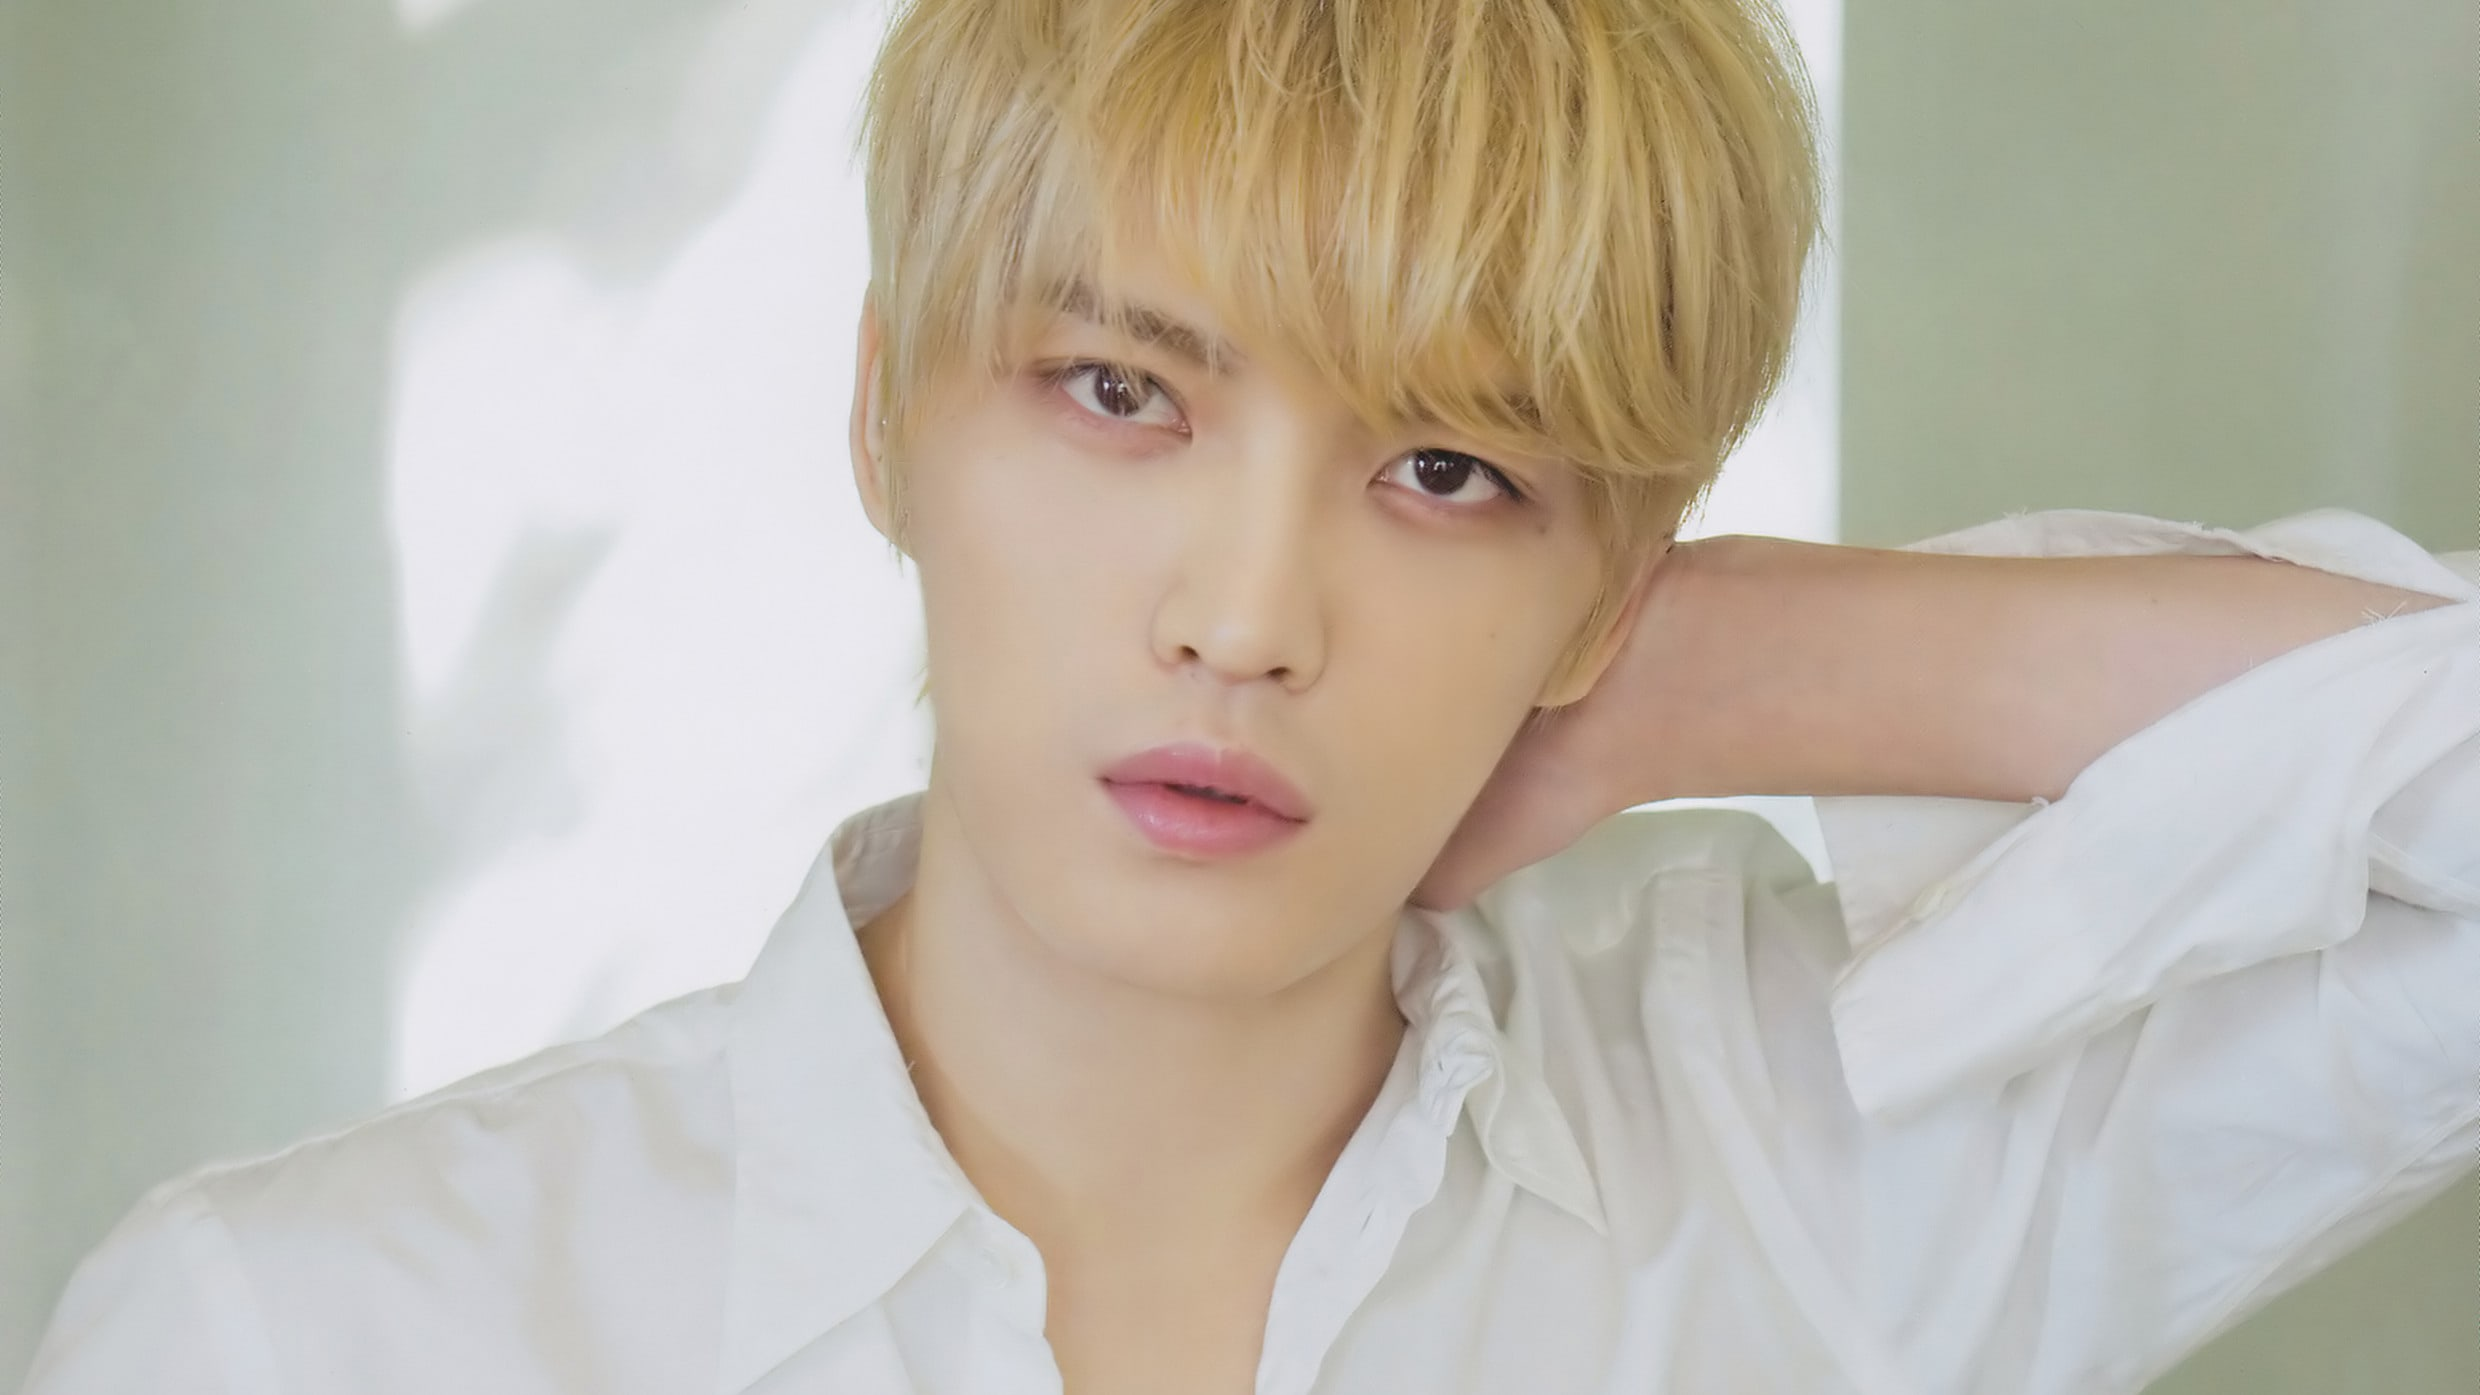 Kim Jaejoong's Seoul Fan Meeting Sells Out In One Minute